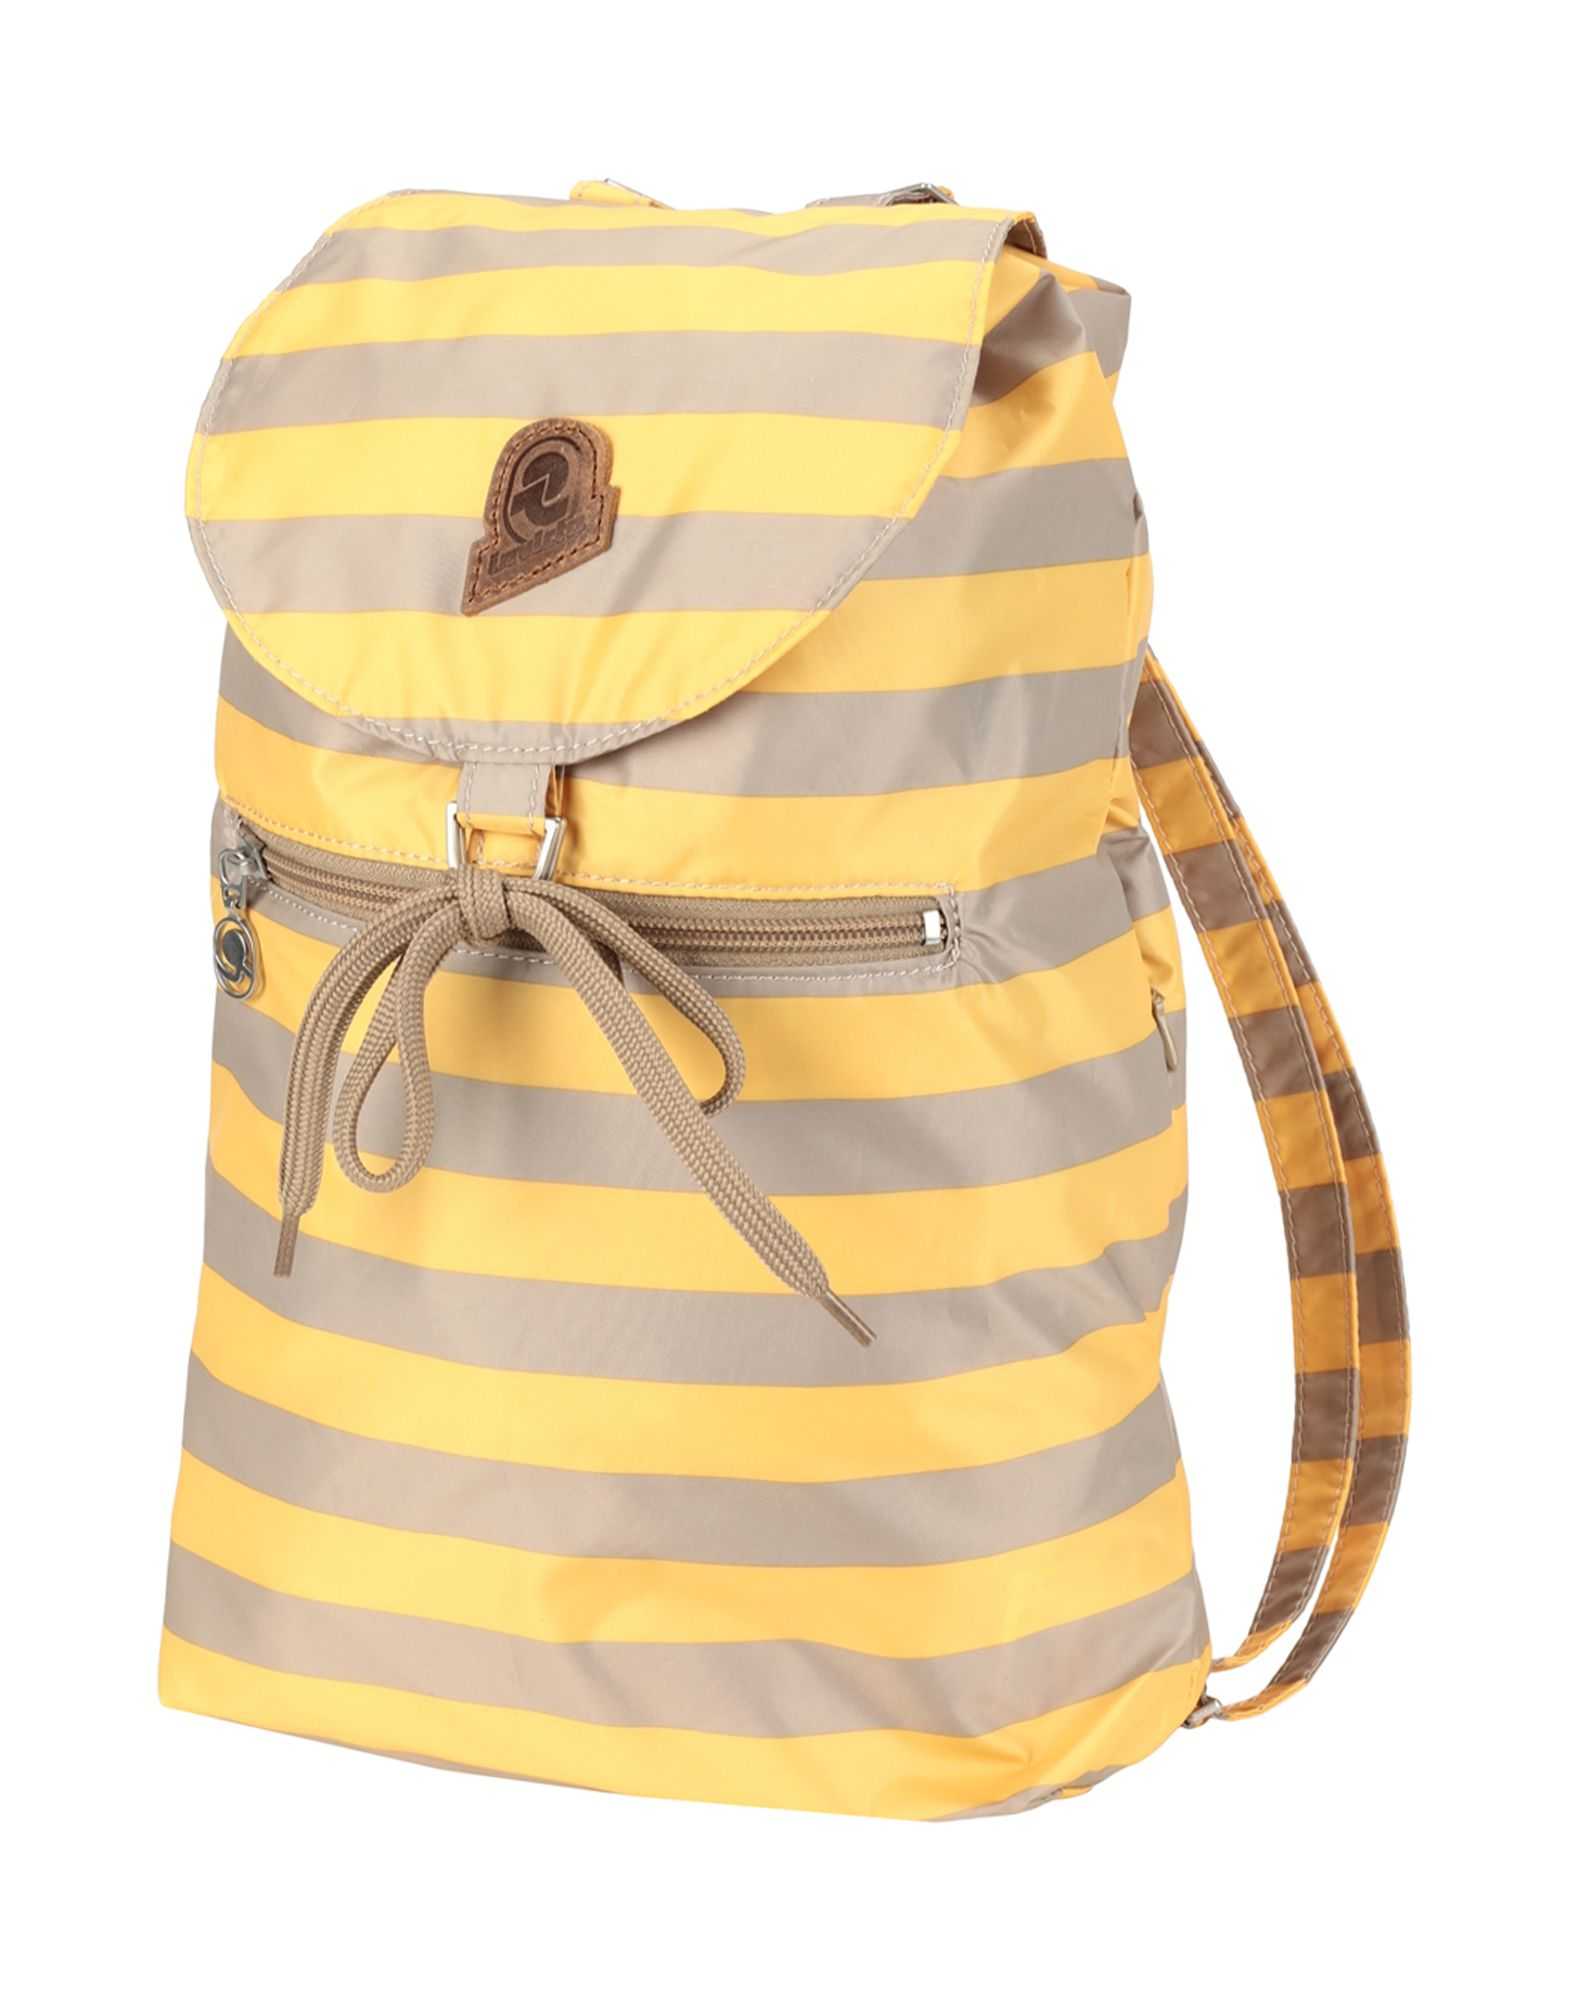 Invicta Backpack & Fanny Pack In Yellow